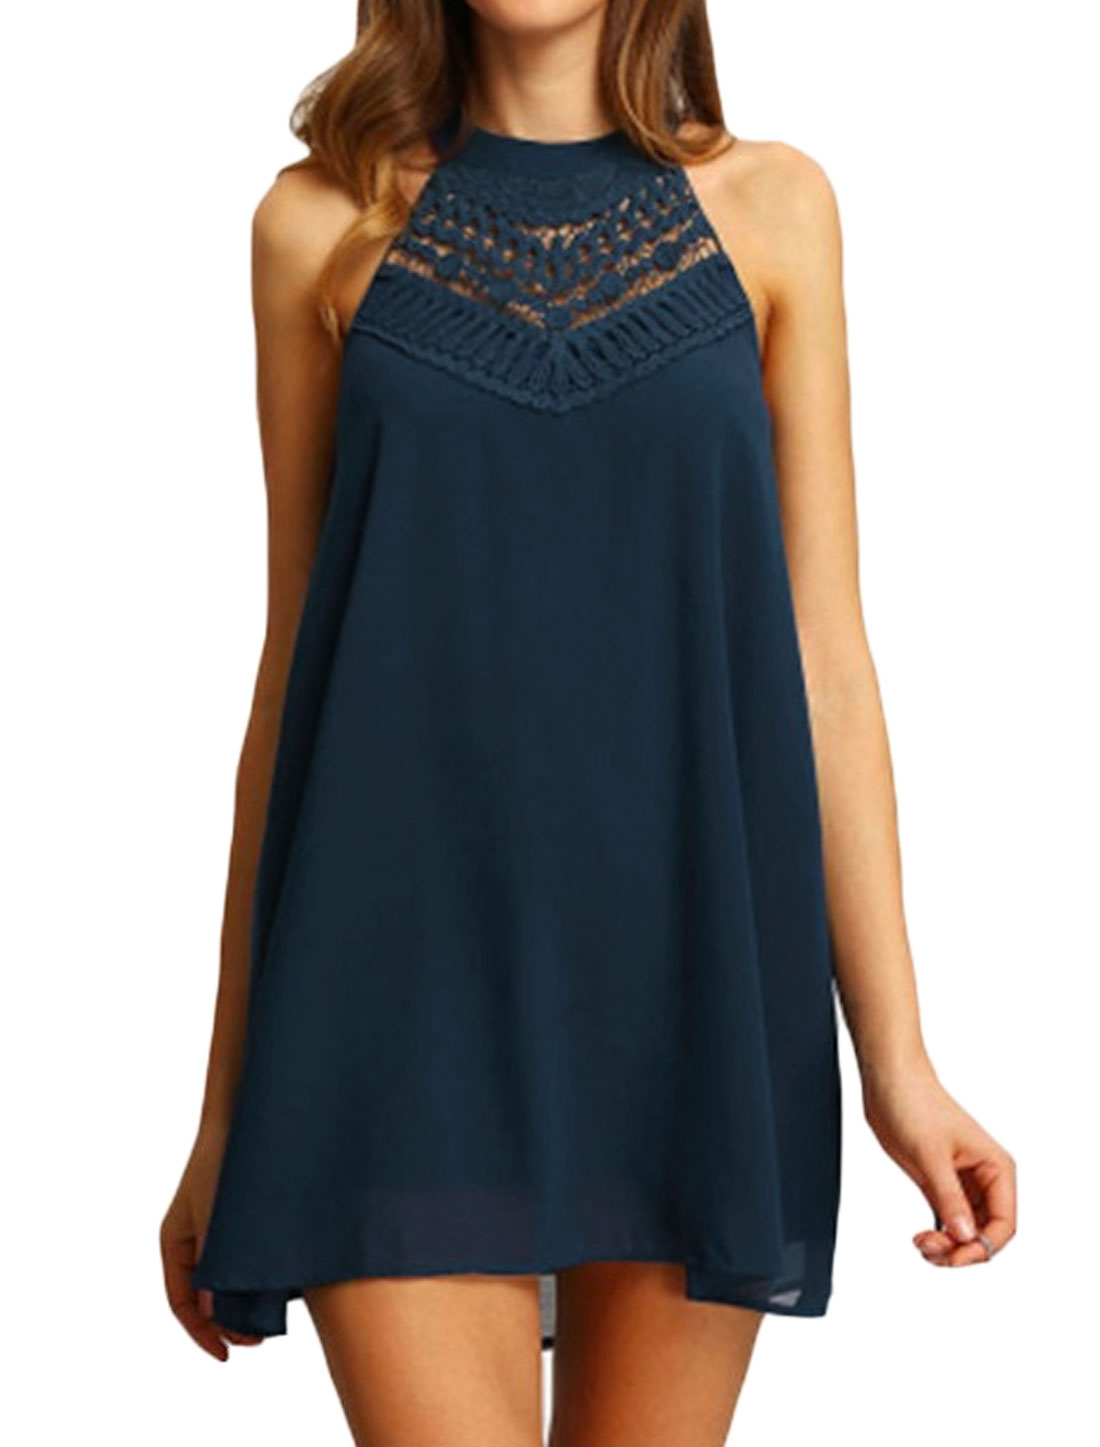 Women Halter Neck Sleeveless Crochet Lace Open Back Tunic Dress Blue M